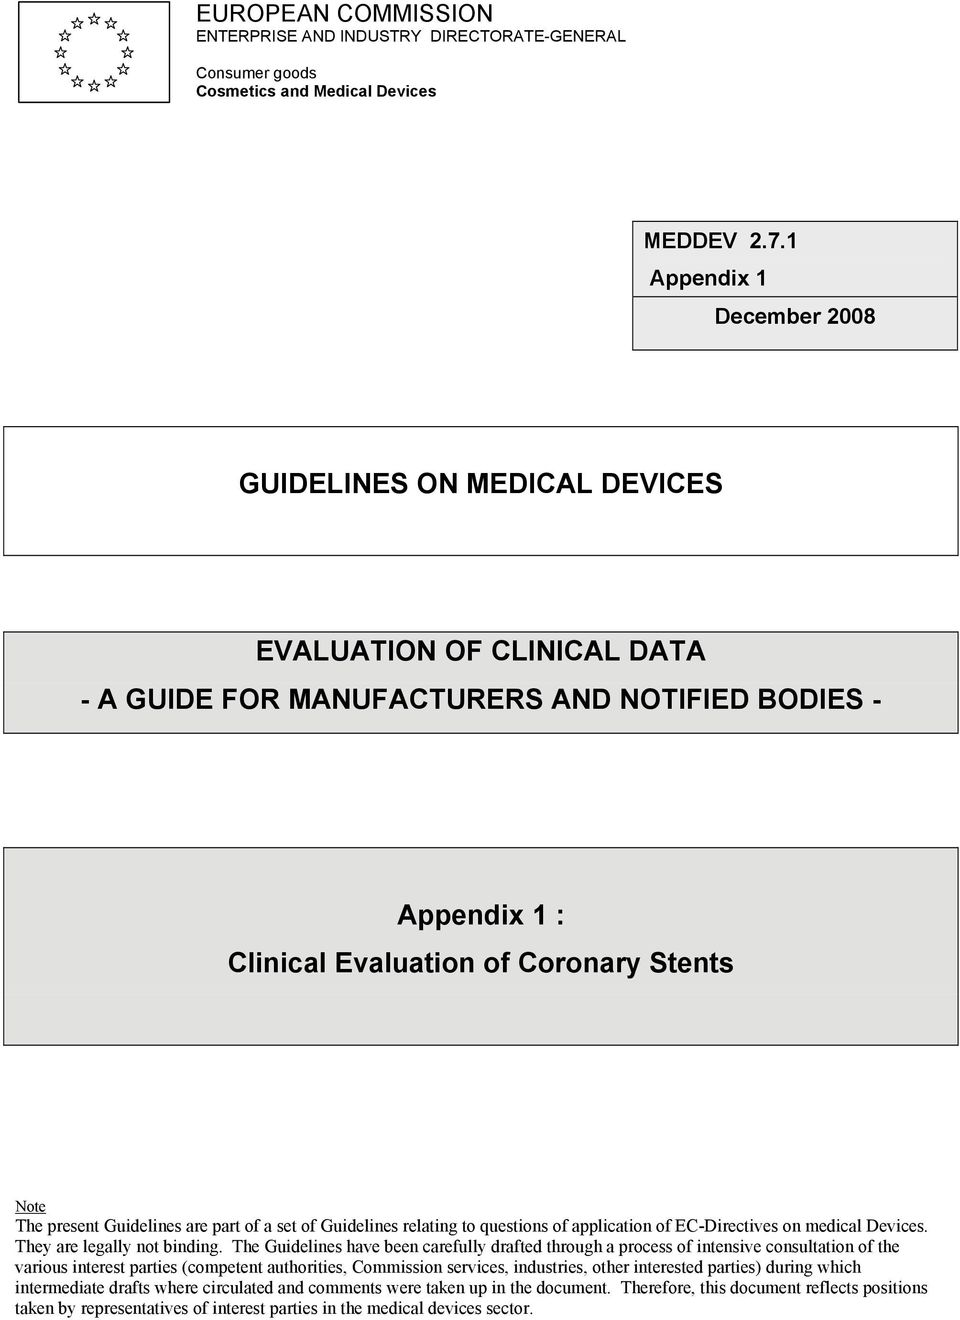 present Guidelines are part of a set of Guidelines relating to questions of application of EC-Directives on medical Devices. They are legally not binding.